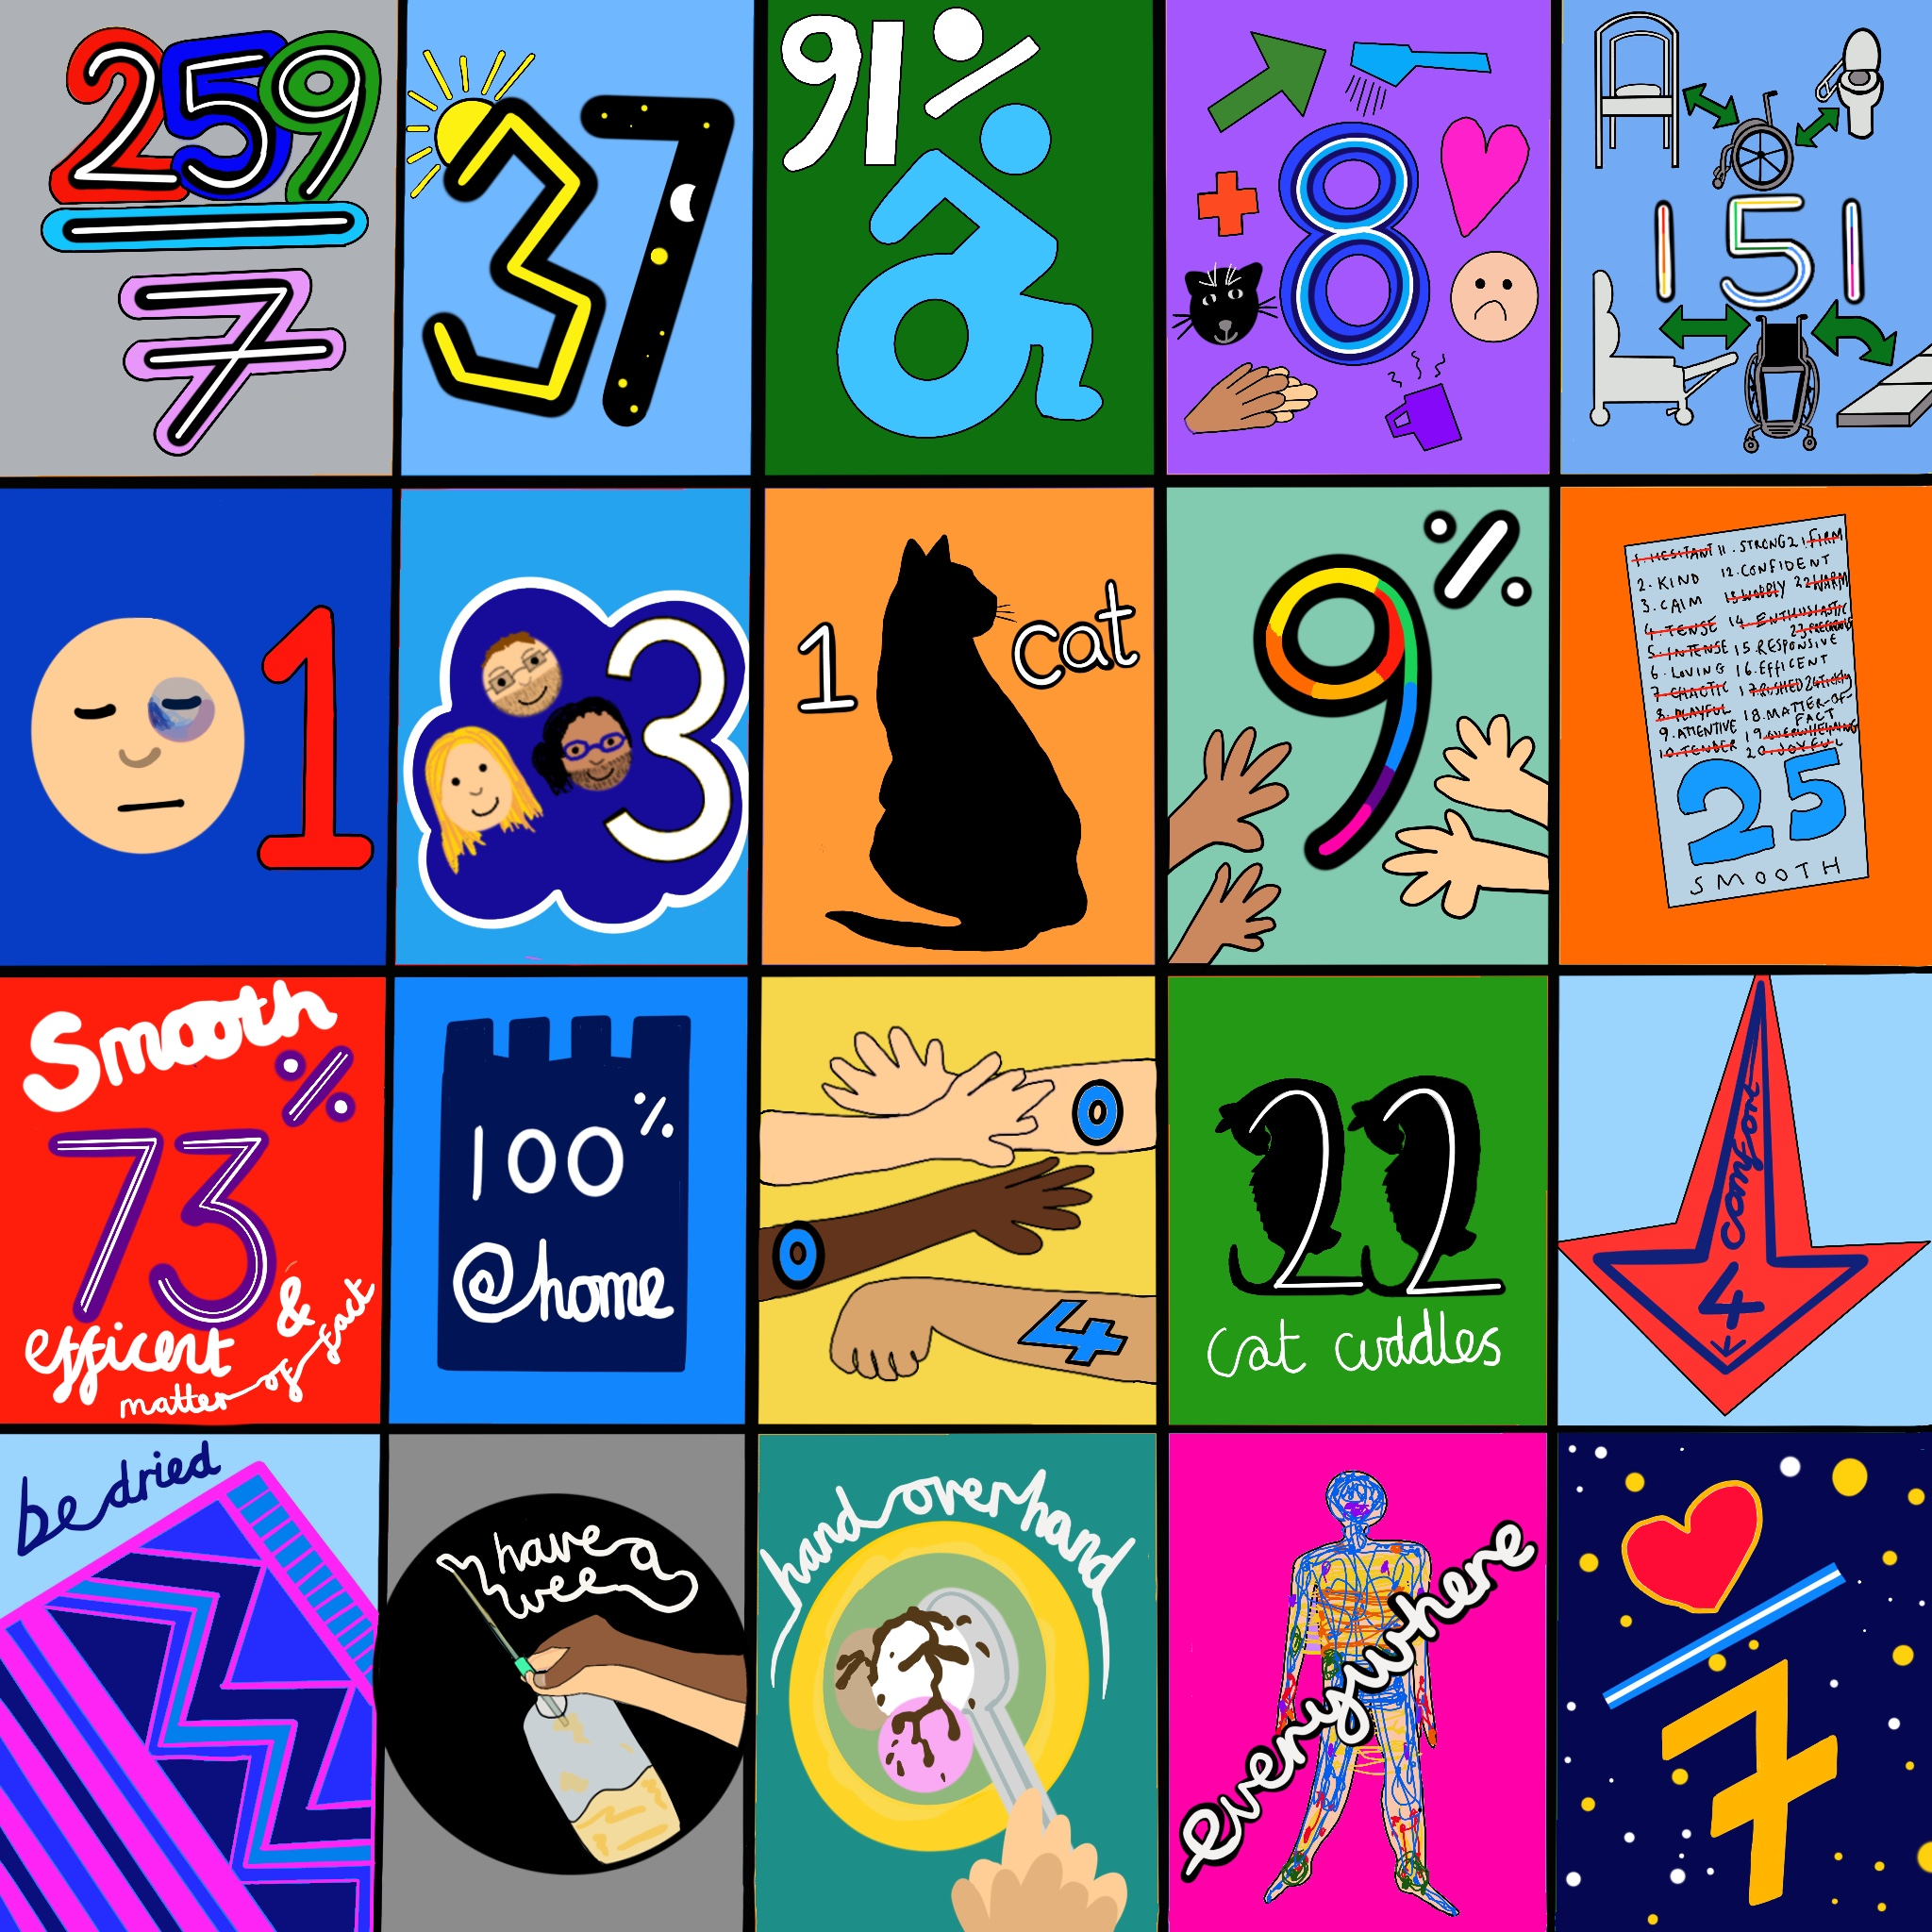 Image shows a digital drawing by Touretteshero of a colourful 5 x 4 square grid depicting every aspect of Touch in her life over the course of a week. Each square shows her findings such as a drawing of the outline of Monkey the cat wrapped around the number 22 with the words 'cat cuddles' below it.